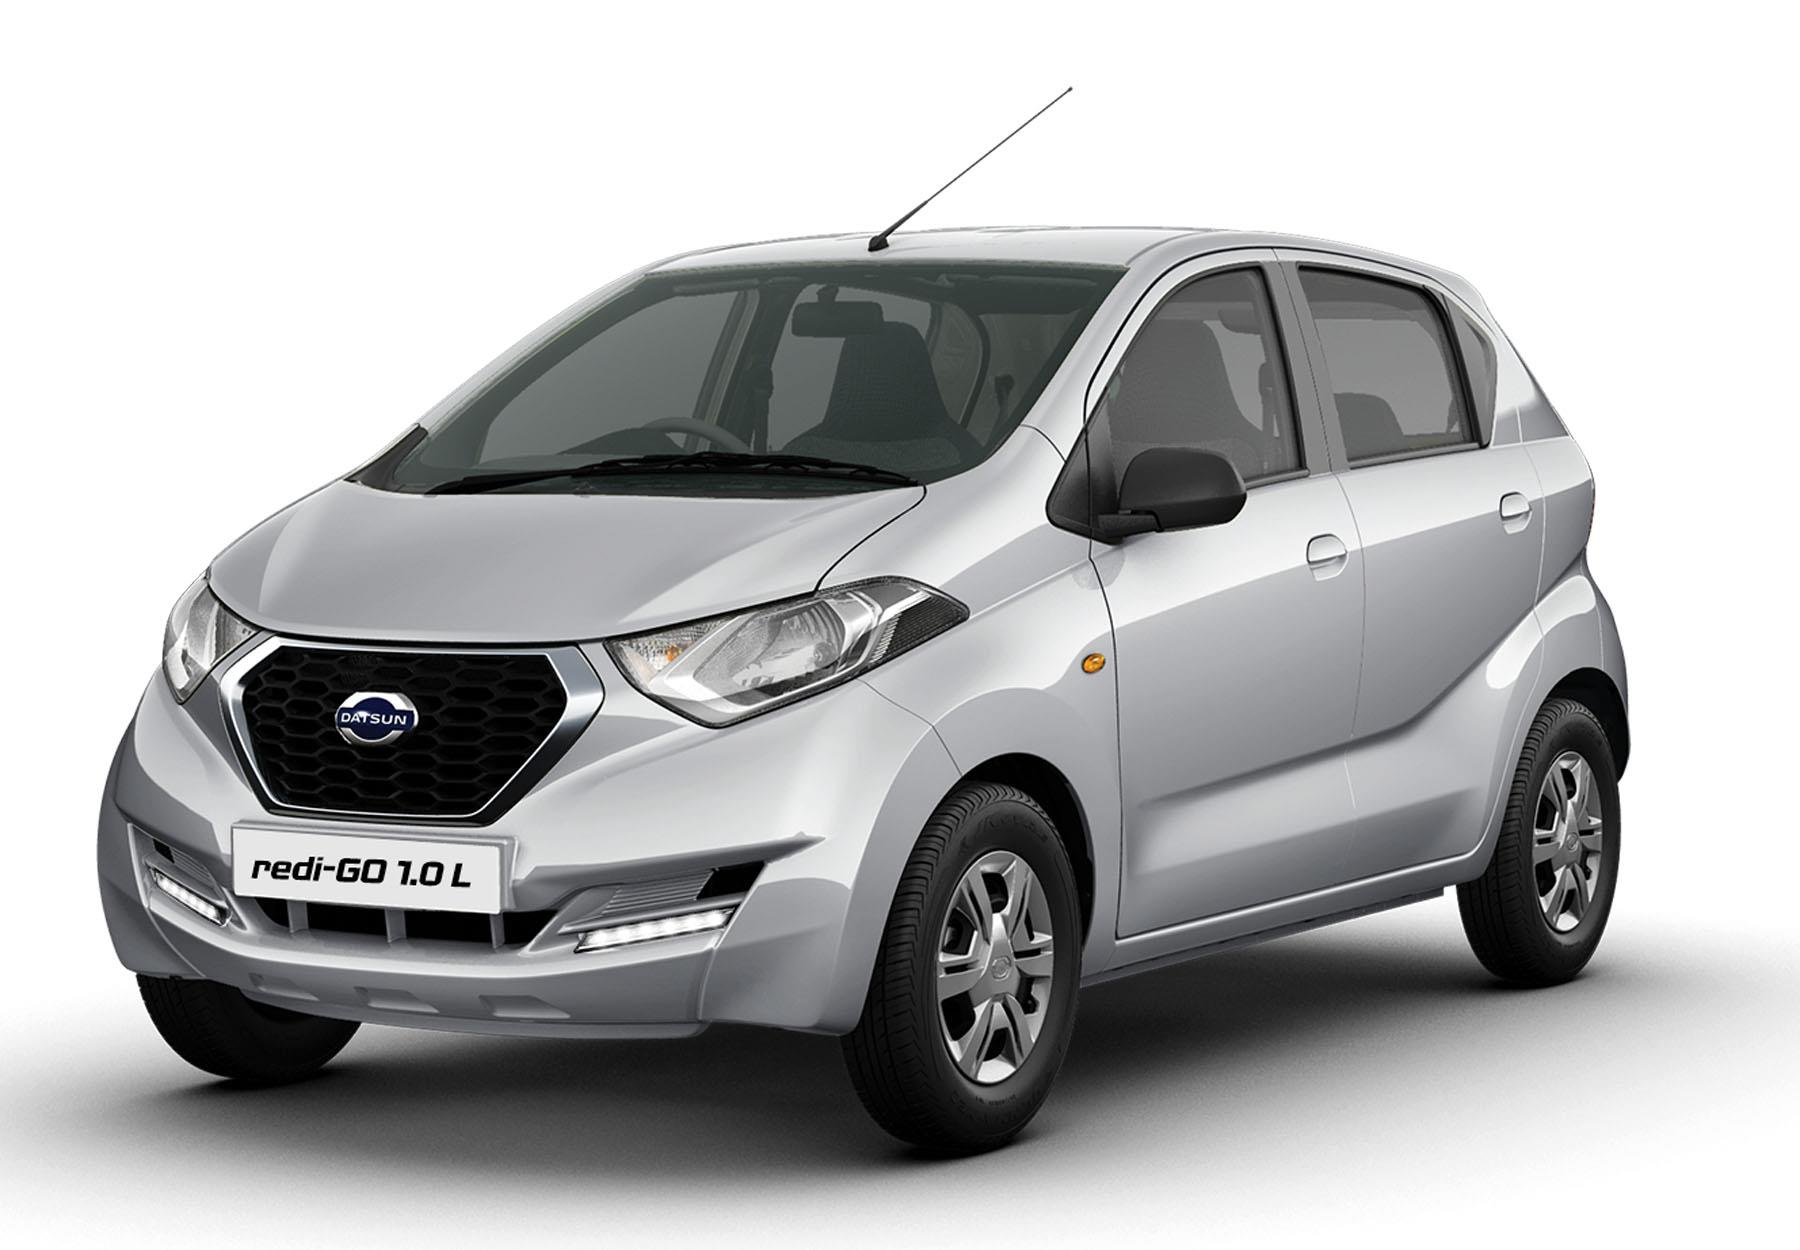 2017 Datsun Redigo 1.0 launched at Rs 3.57 lakh